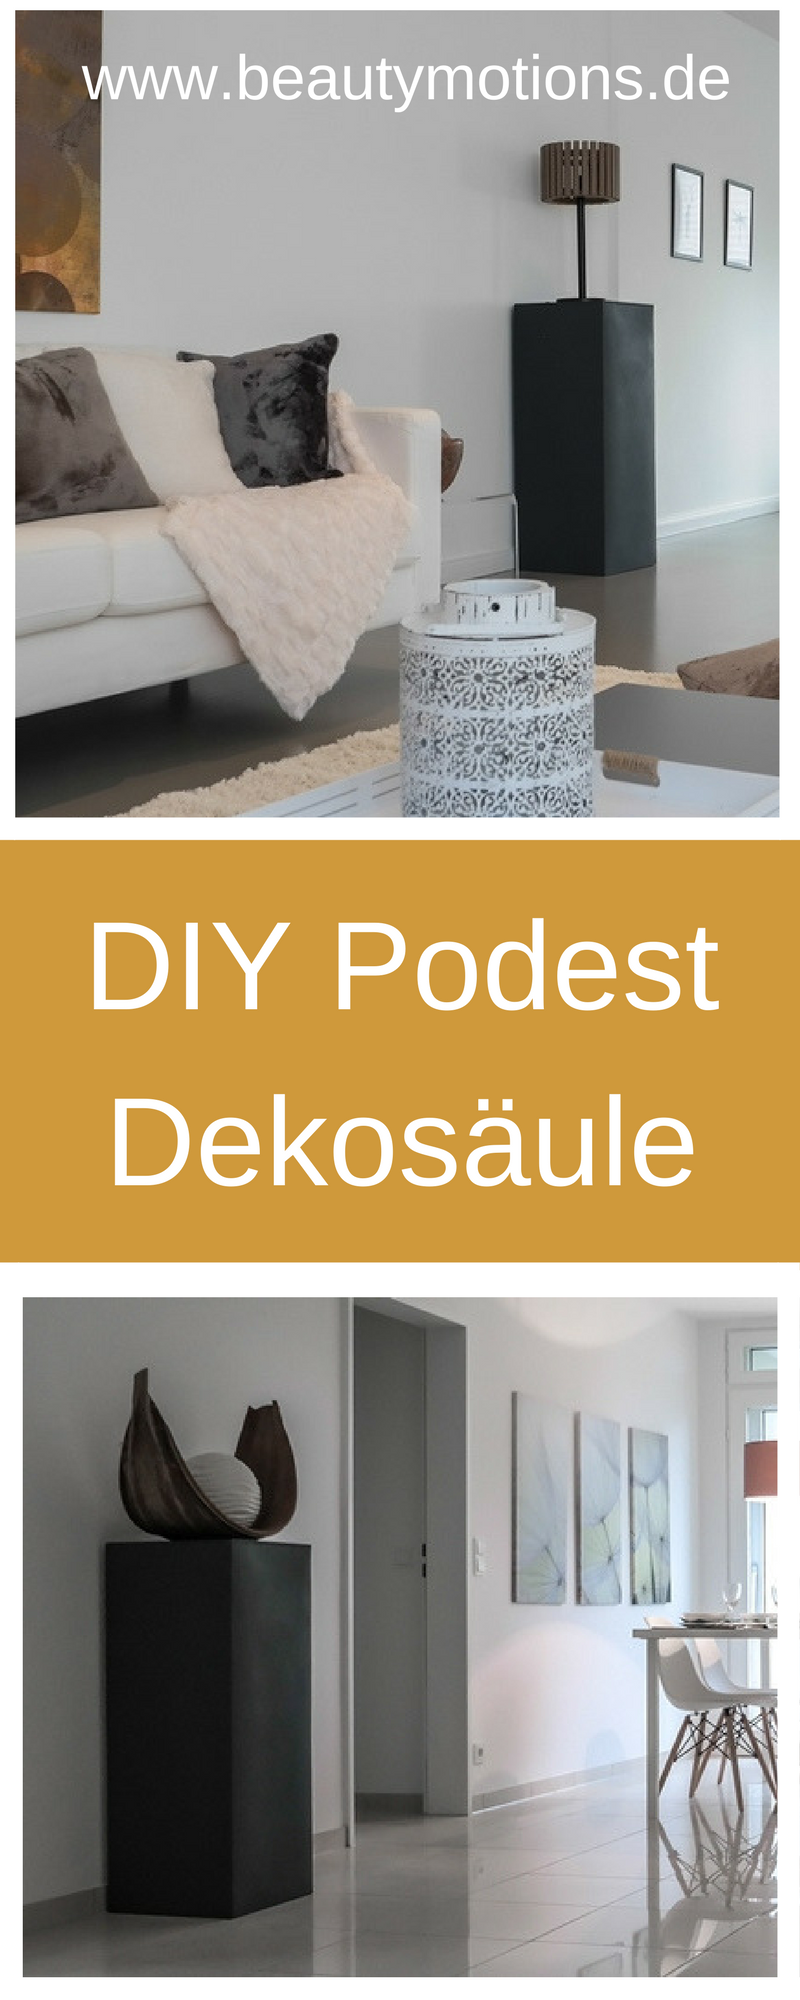 diy podest dekos ule beautymotions by petra bach. Black Bedroom Furniture Sets. Home Design Ideas